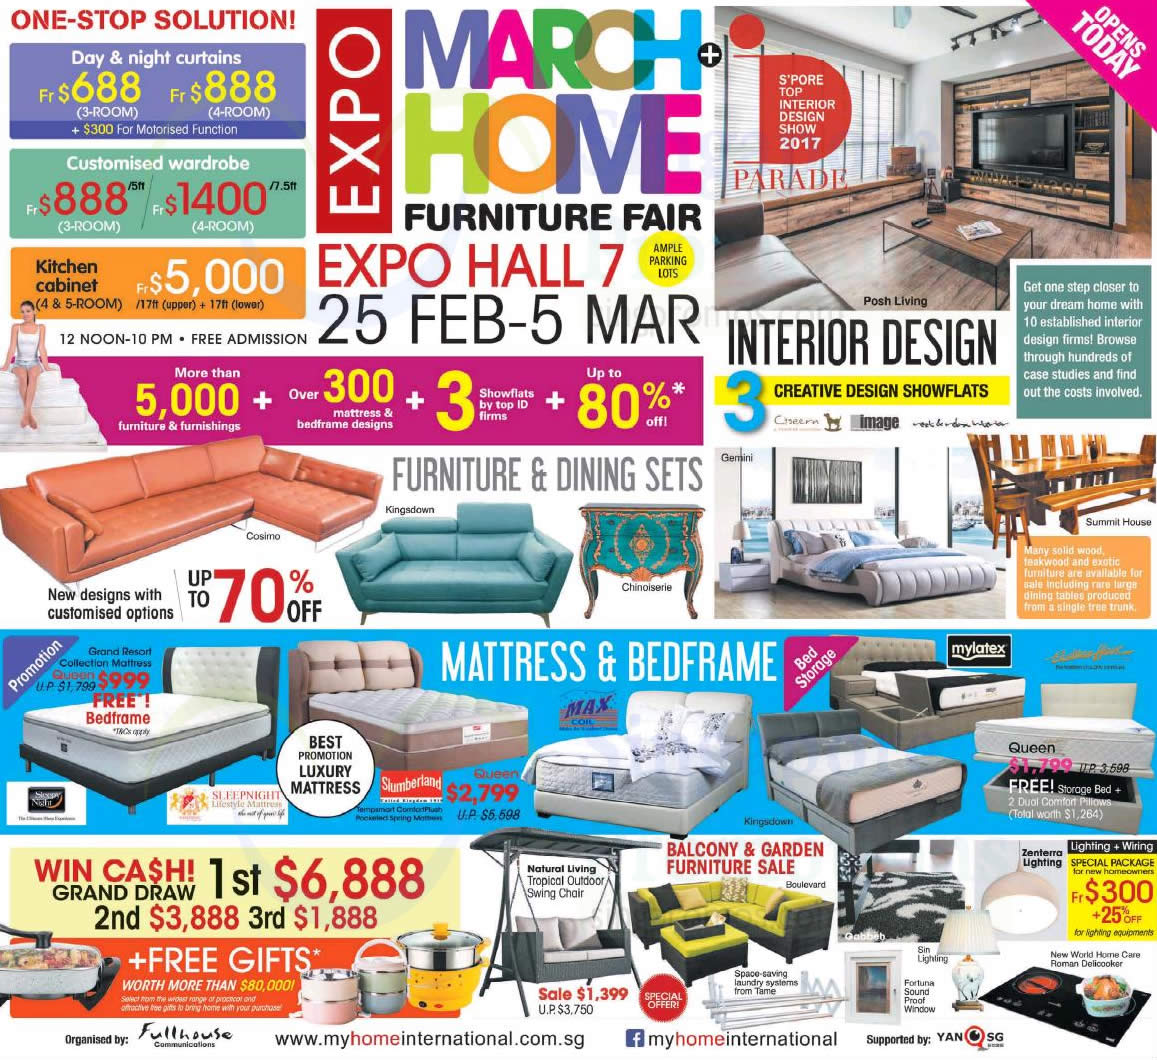 March Home Expo Furniture Fair At Singapore Expo From 25 Feb 5 Mar 2017